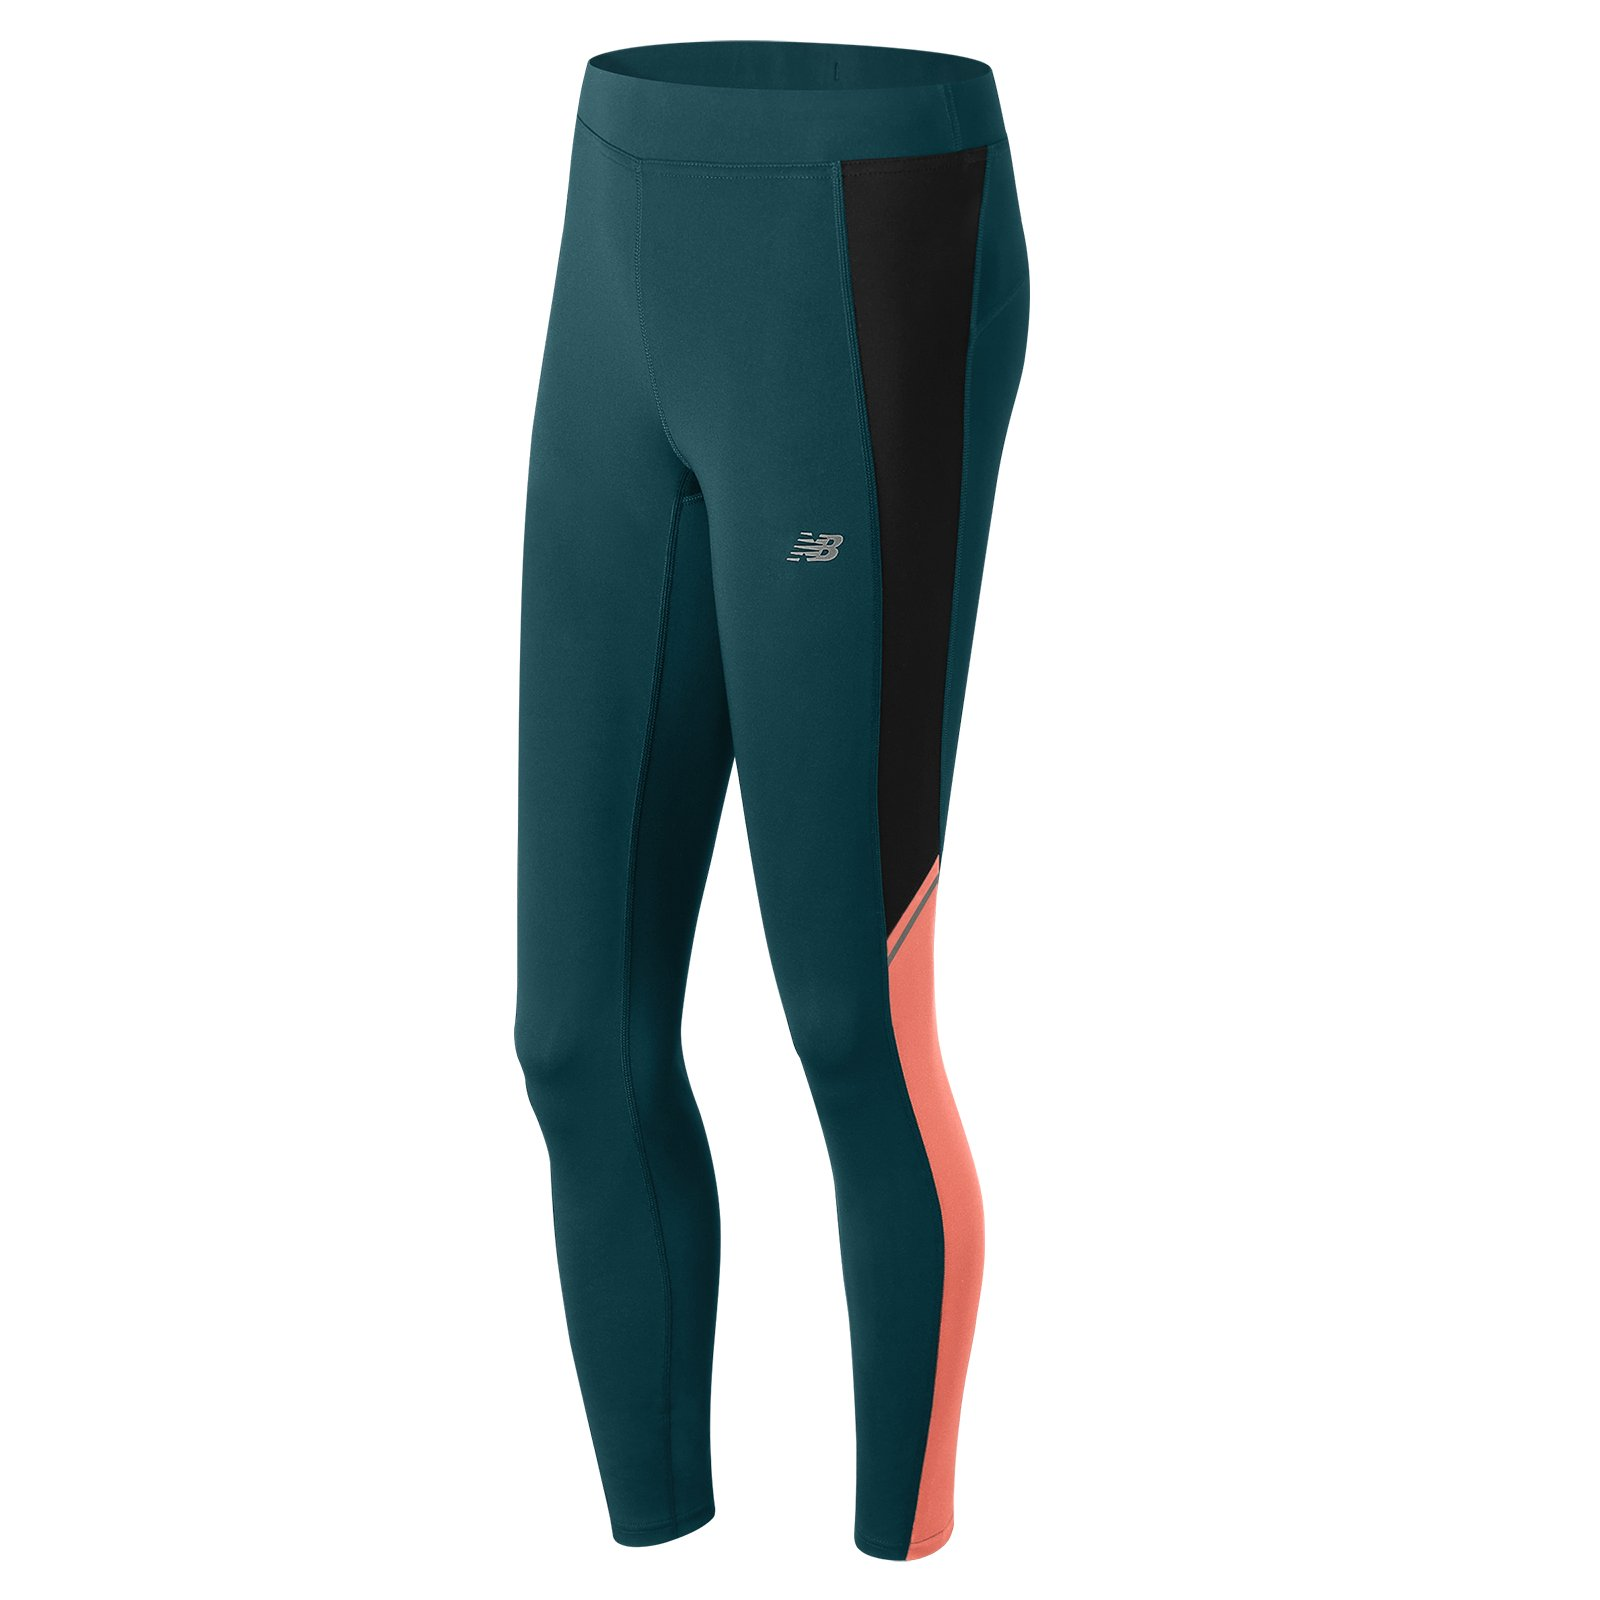 New Balance Women's Accelerate Tights, Bleached Sunrise, X-Large